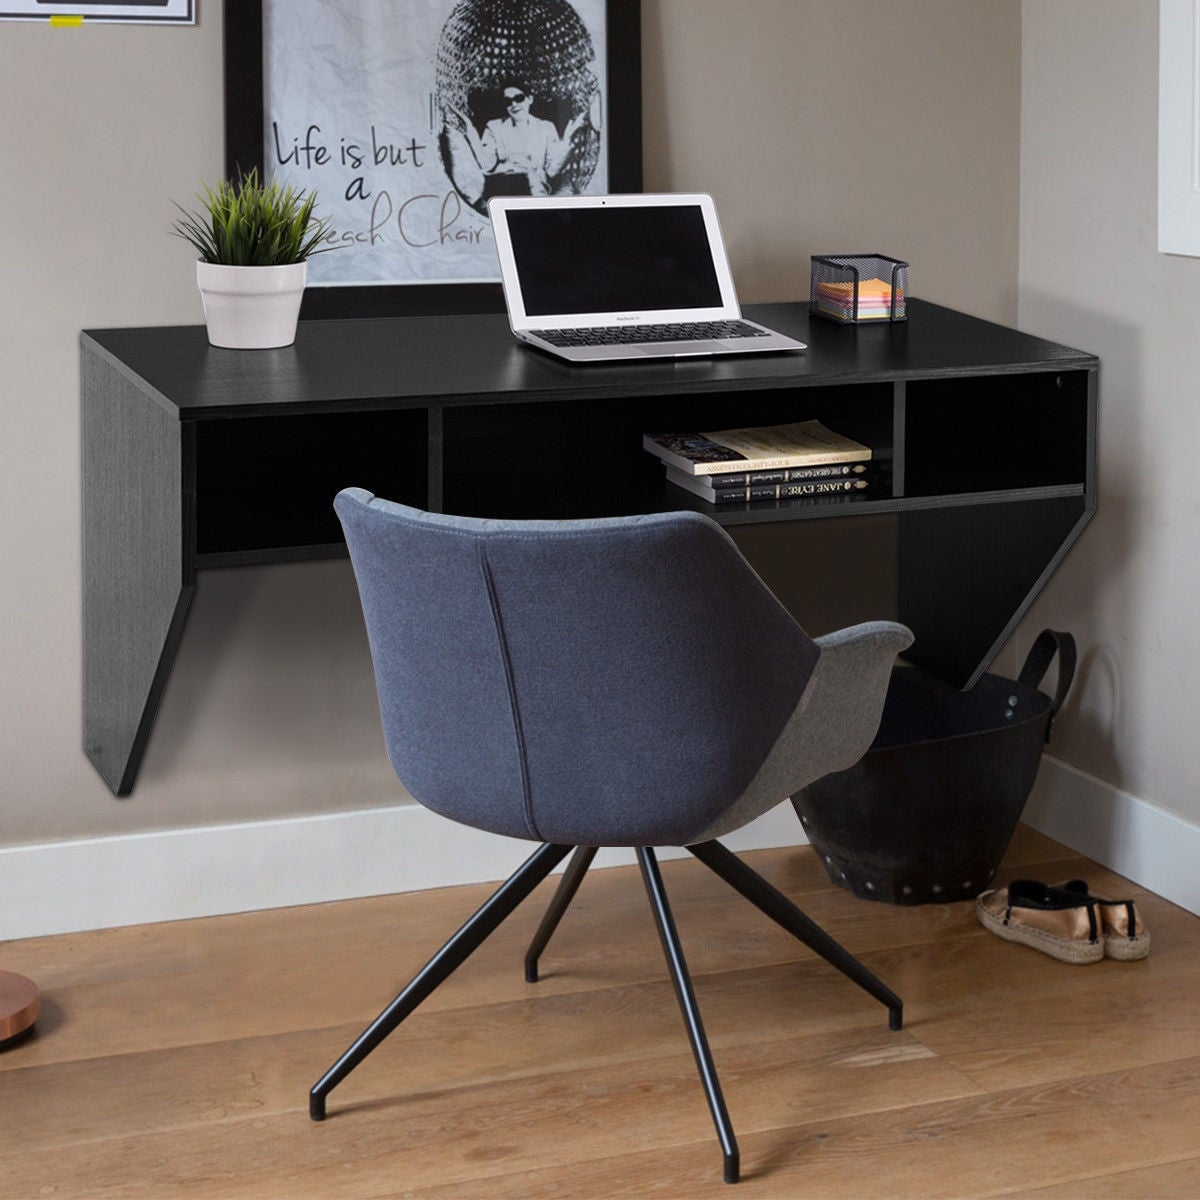 Costway Floating Wall-Mounted Desk